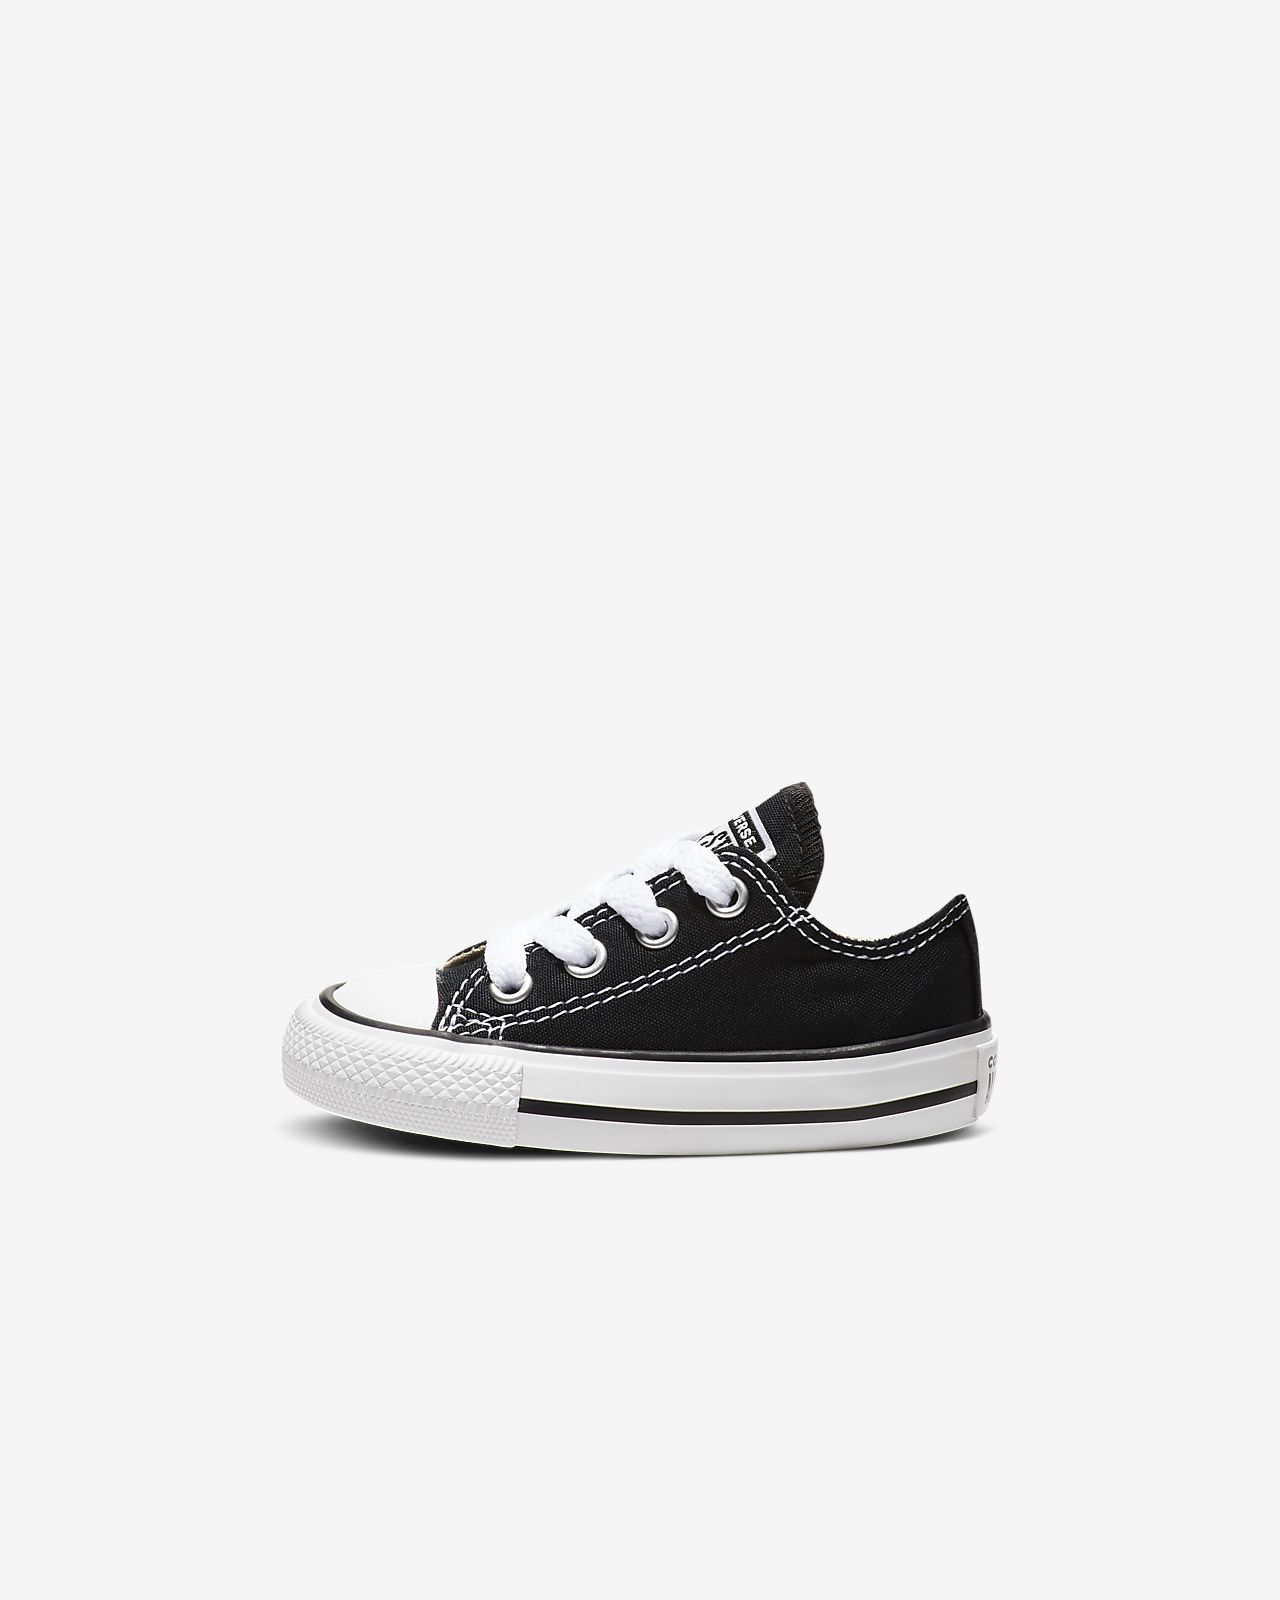 e4efe497f6e0 Converse Chuck Taylor All Star Low Top Infant Toddler Shoe. Nike.com